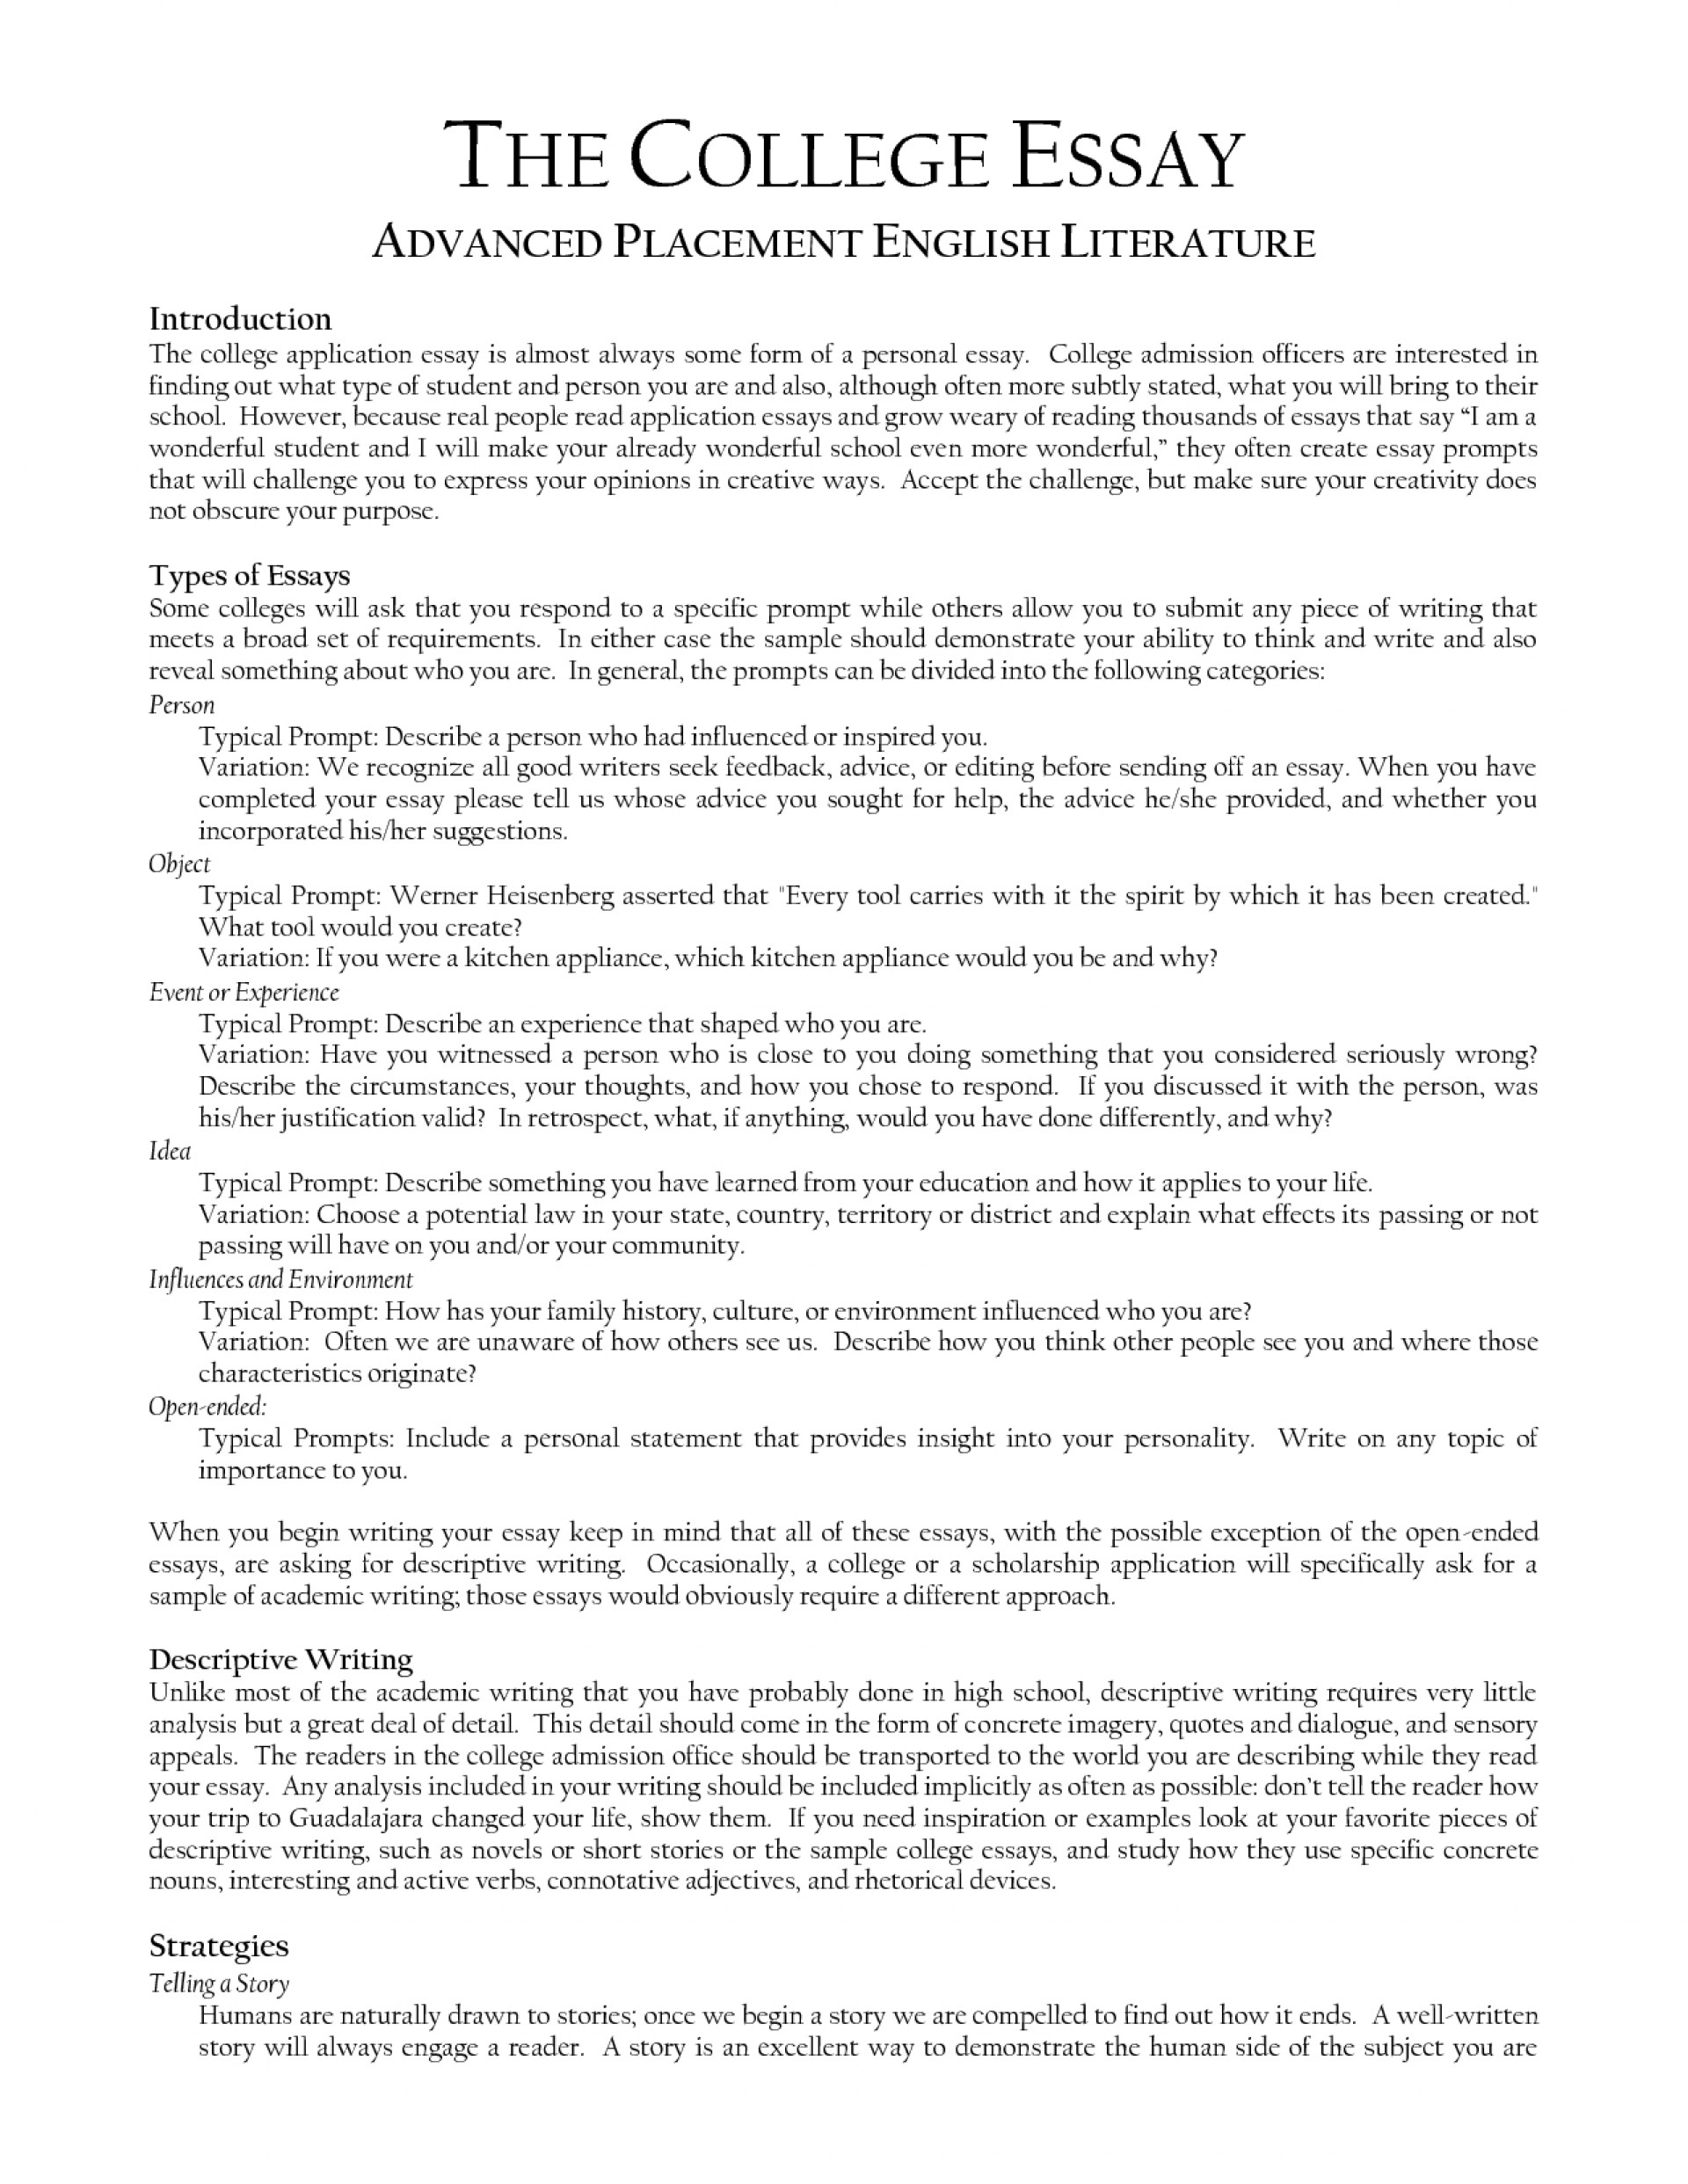 011 Essay Example John Hopkins Essays That Worked Good College Examples Writings And About Sports Format Asli Aetherair Apply Texas Stanford Reddit Johns Topic Singular 2020 2021 2018 1920